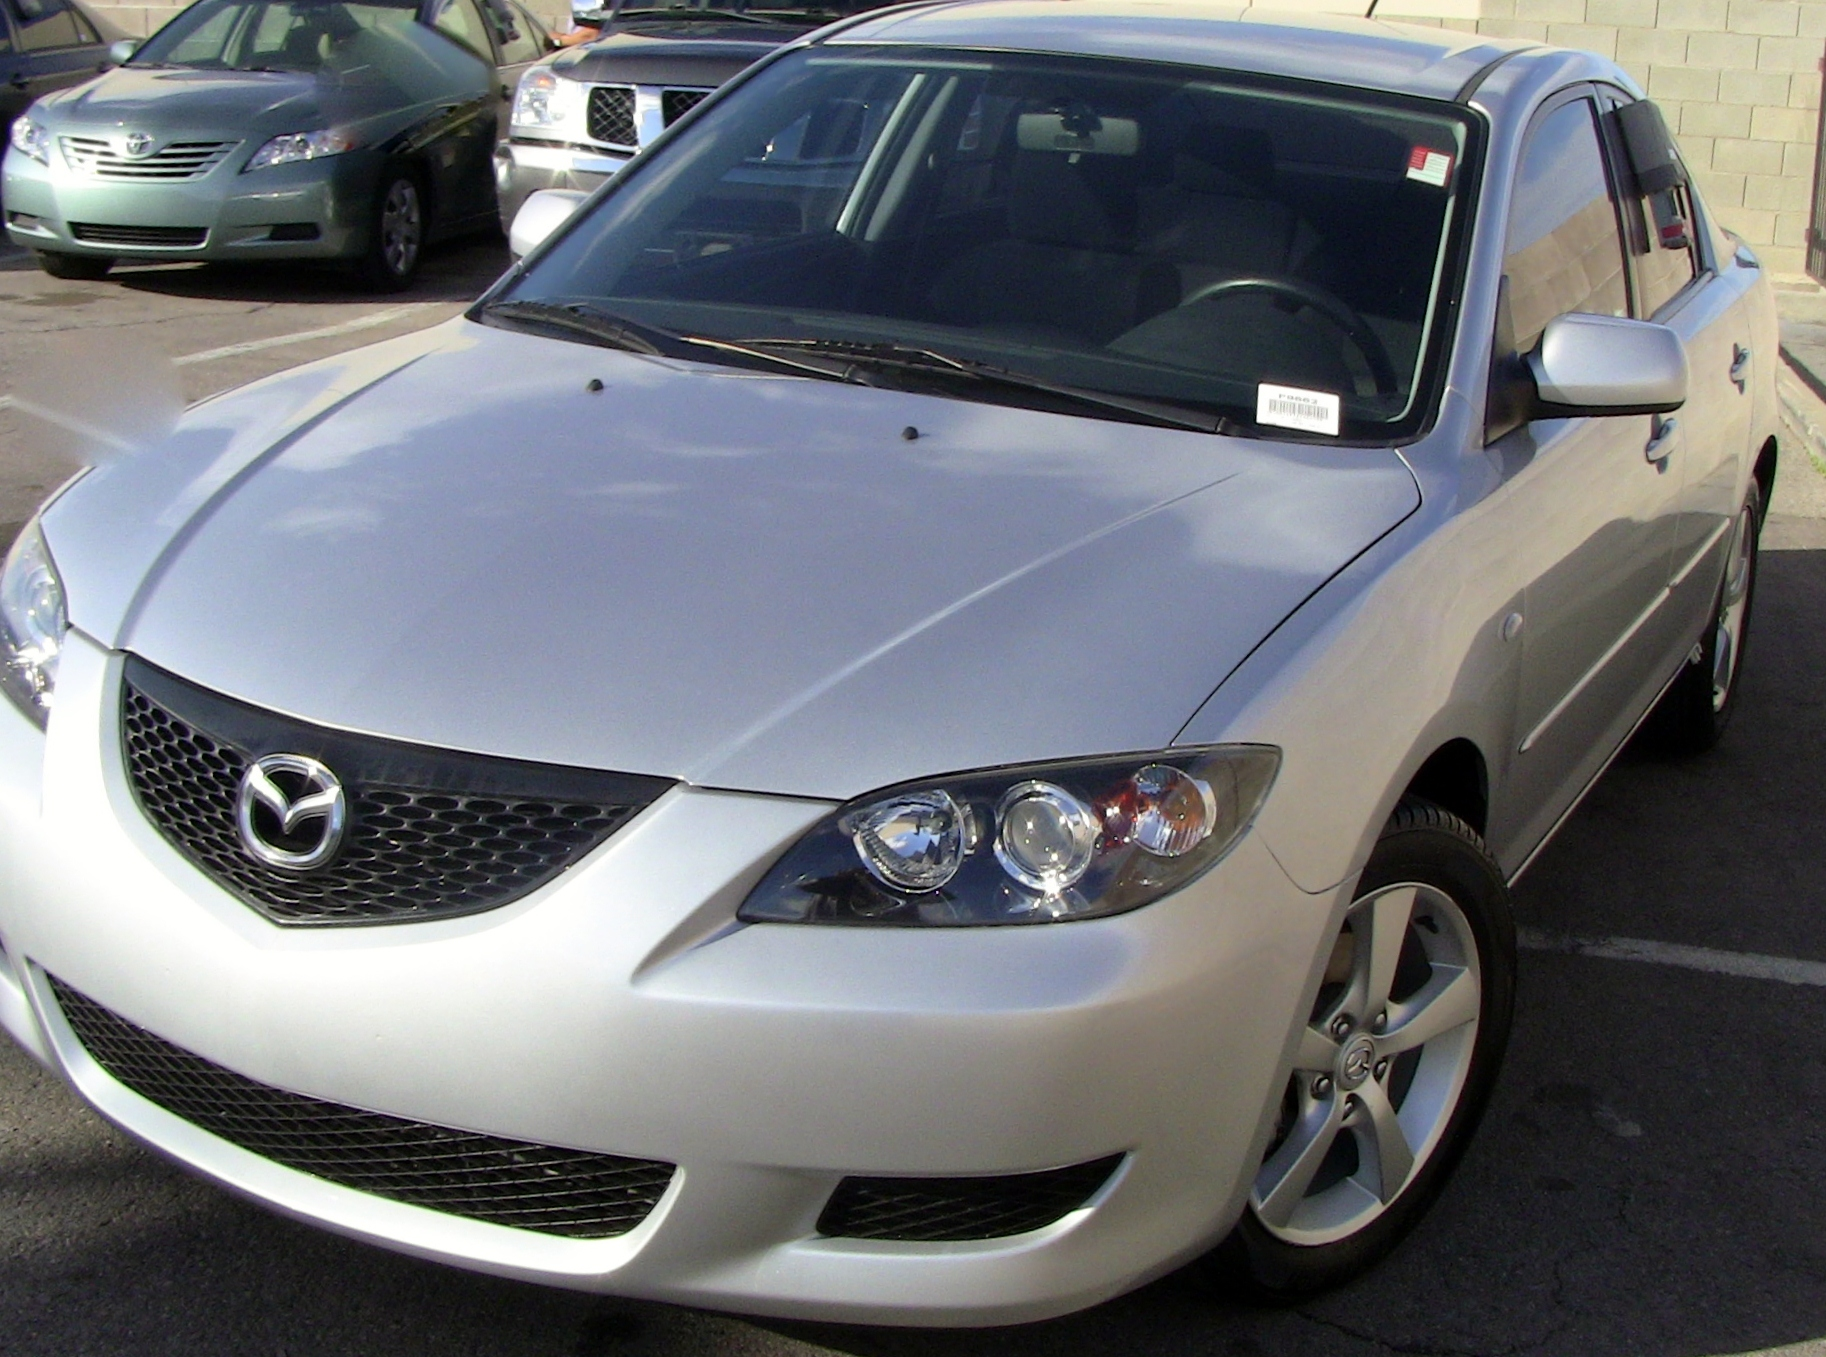 2006 mazda 3 i touring for sale las vegas mycarlady. Black Bedroom Furniture Sets. Home Design Ideas